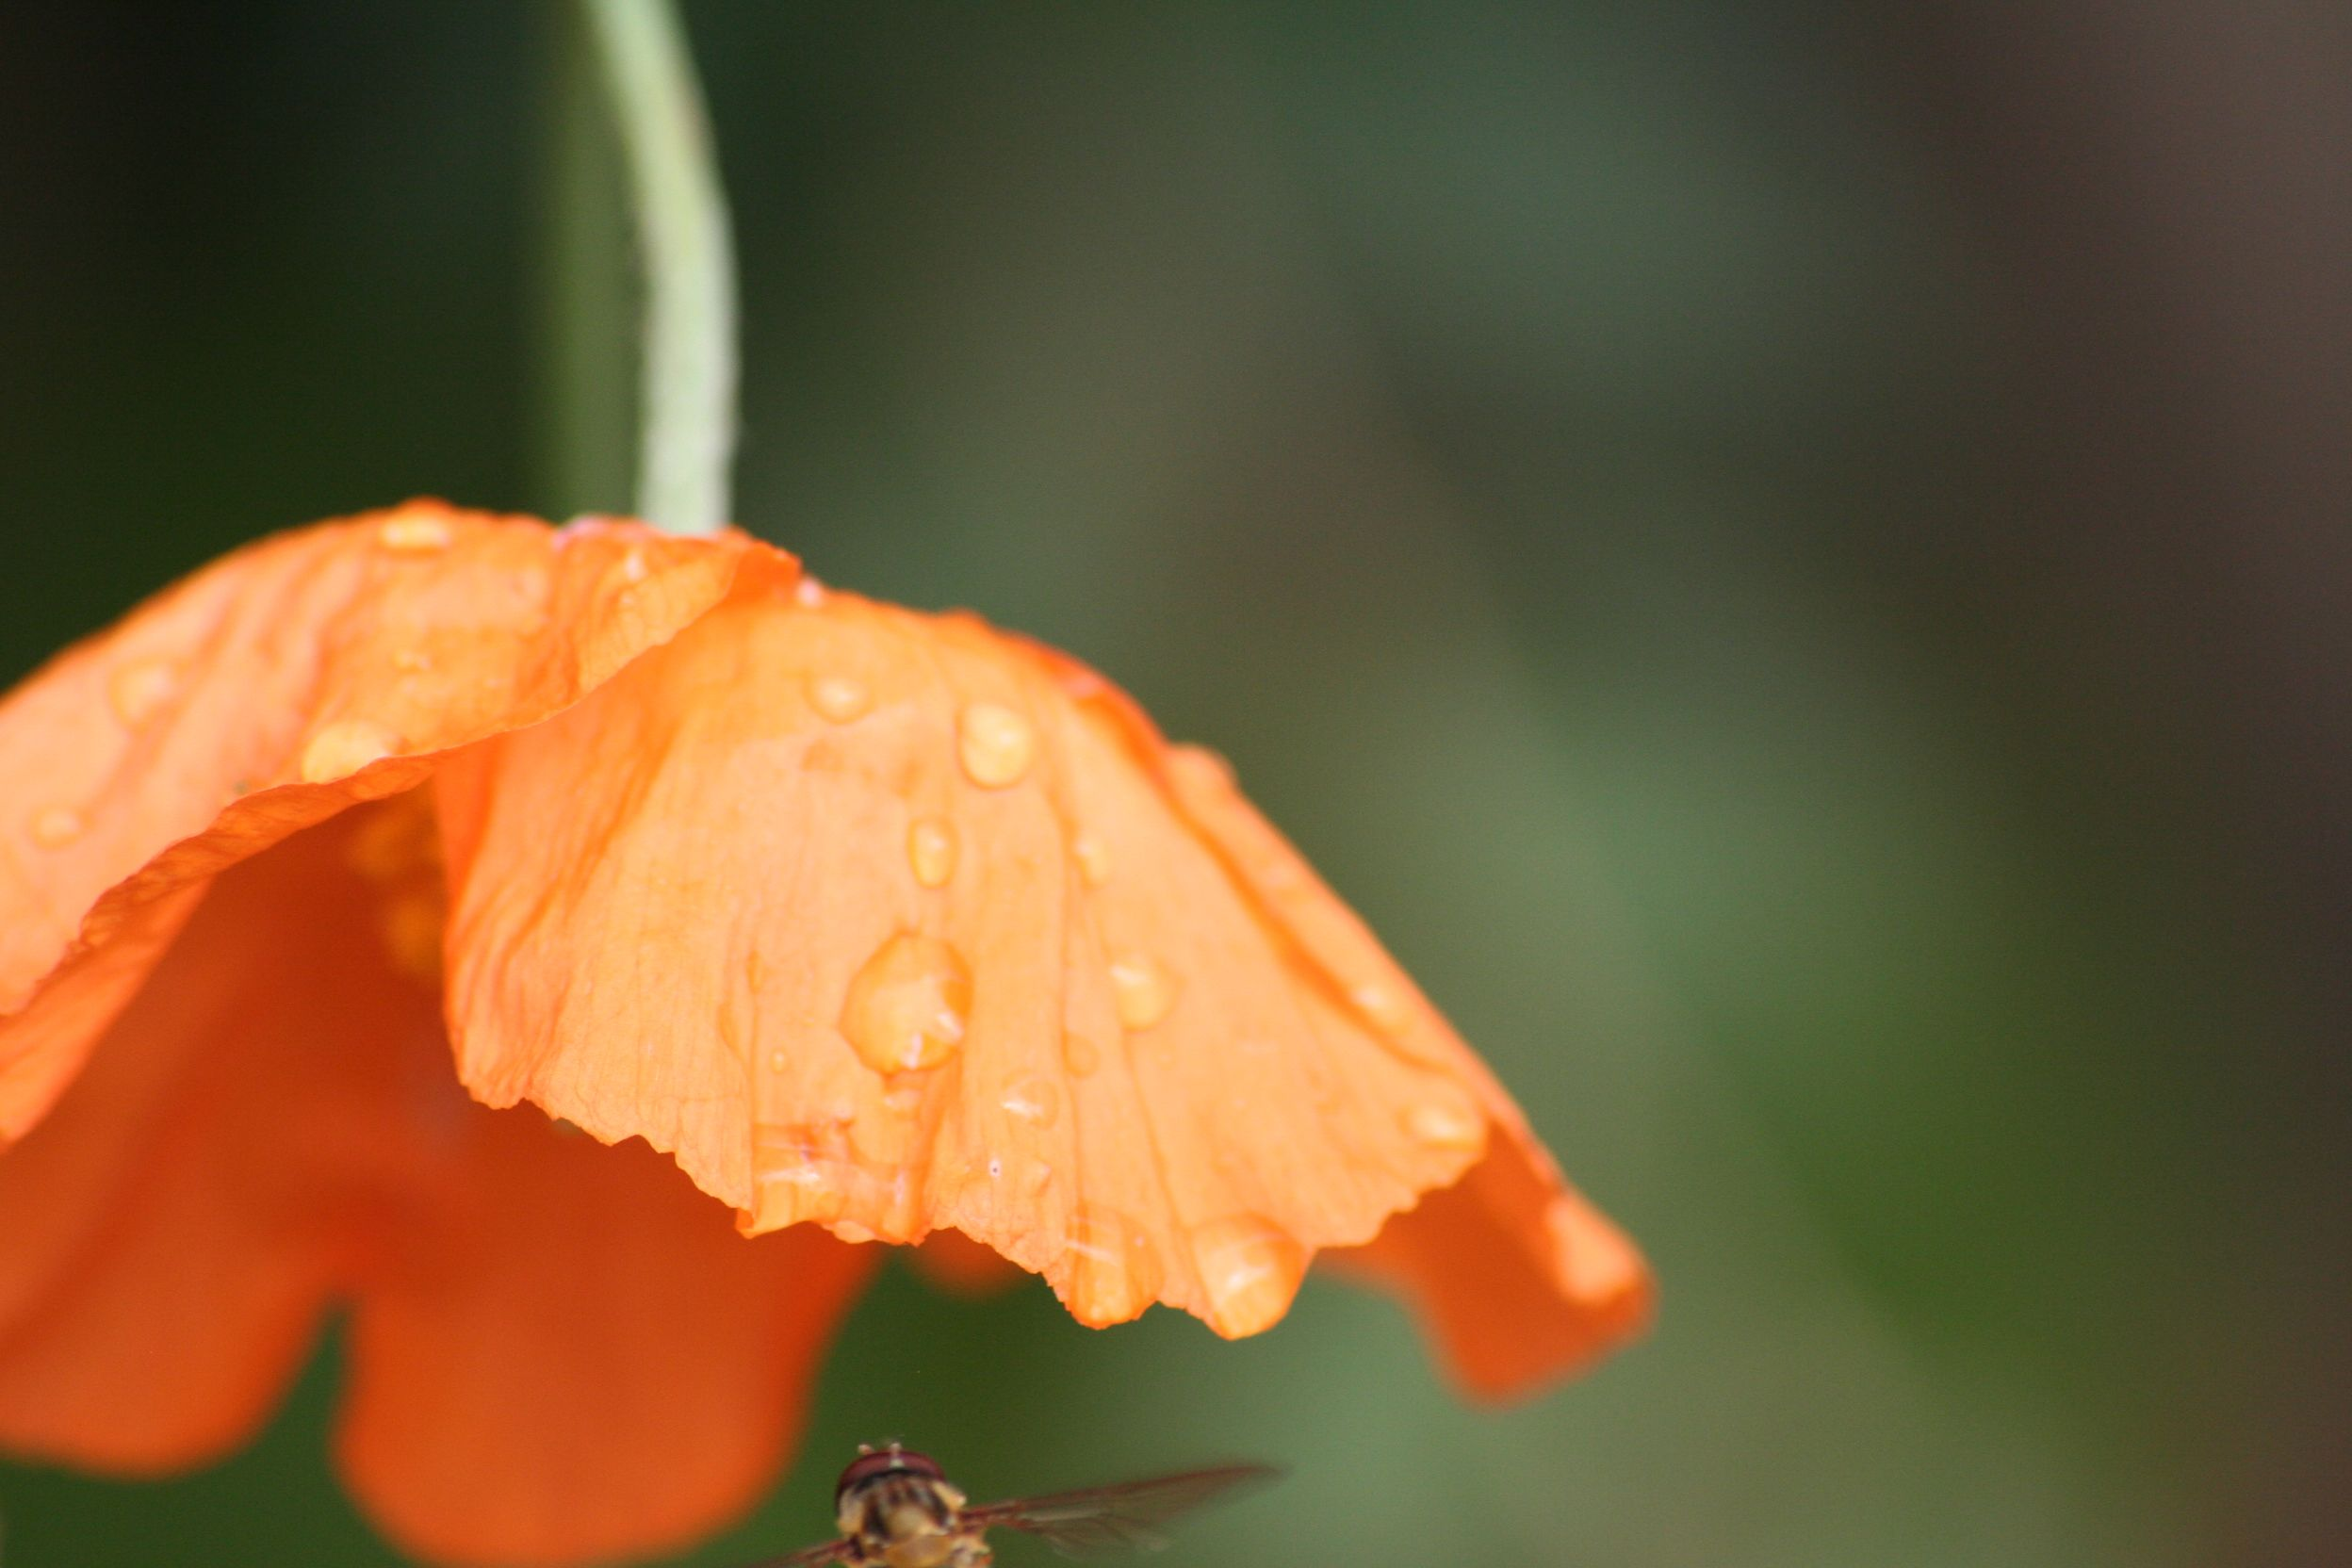 Cant remember what this fly thing was or what the flower is, well done!